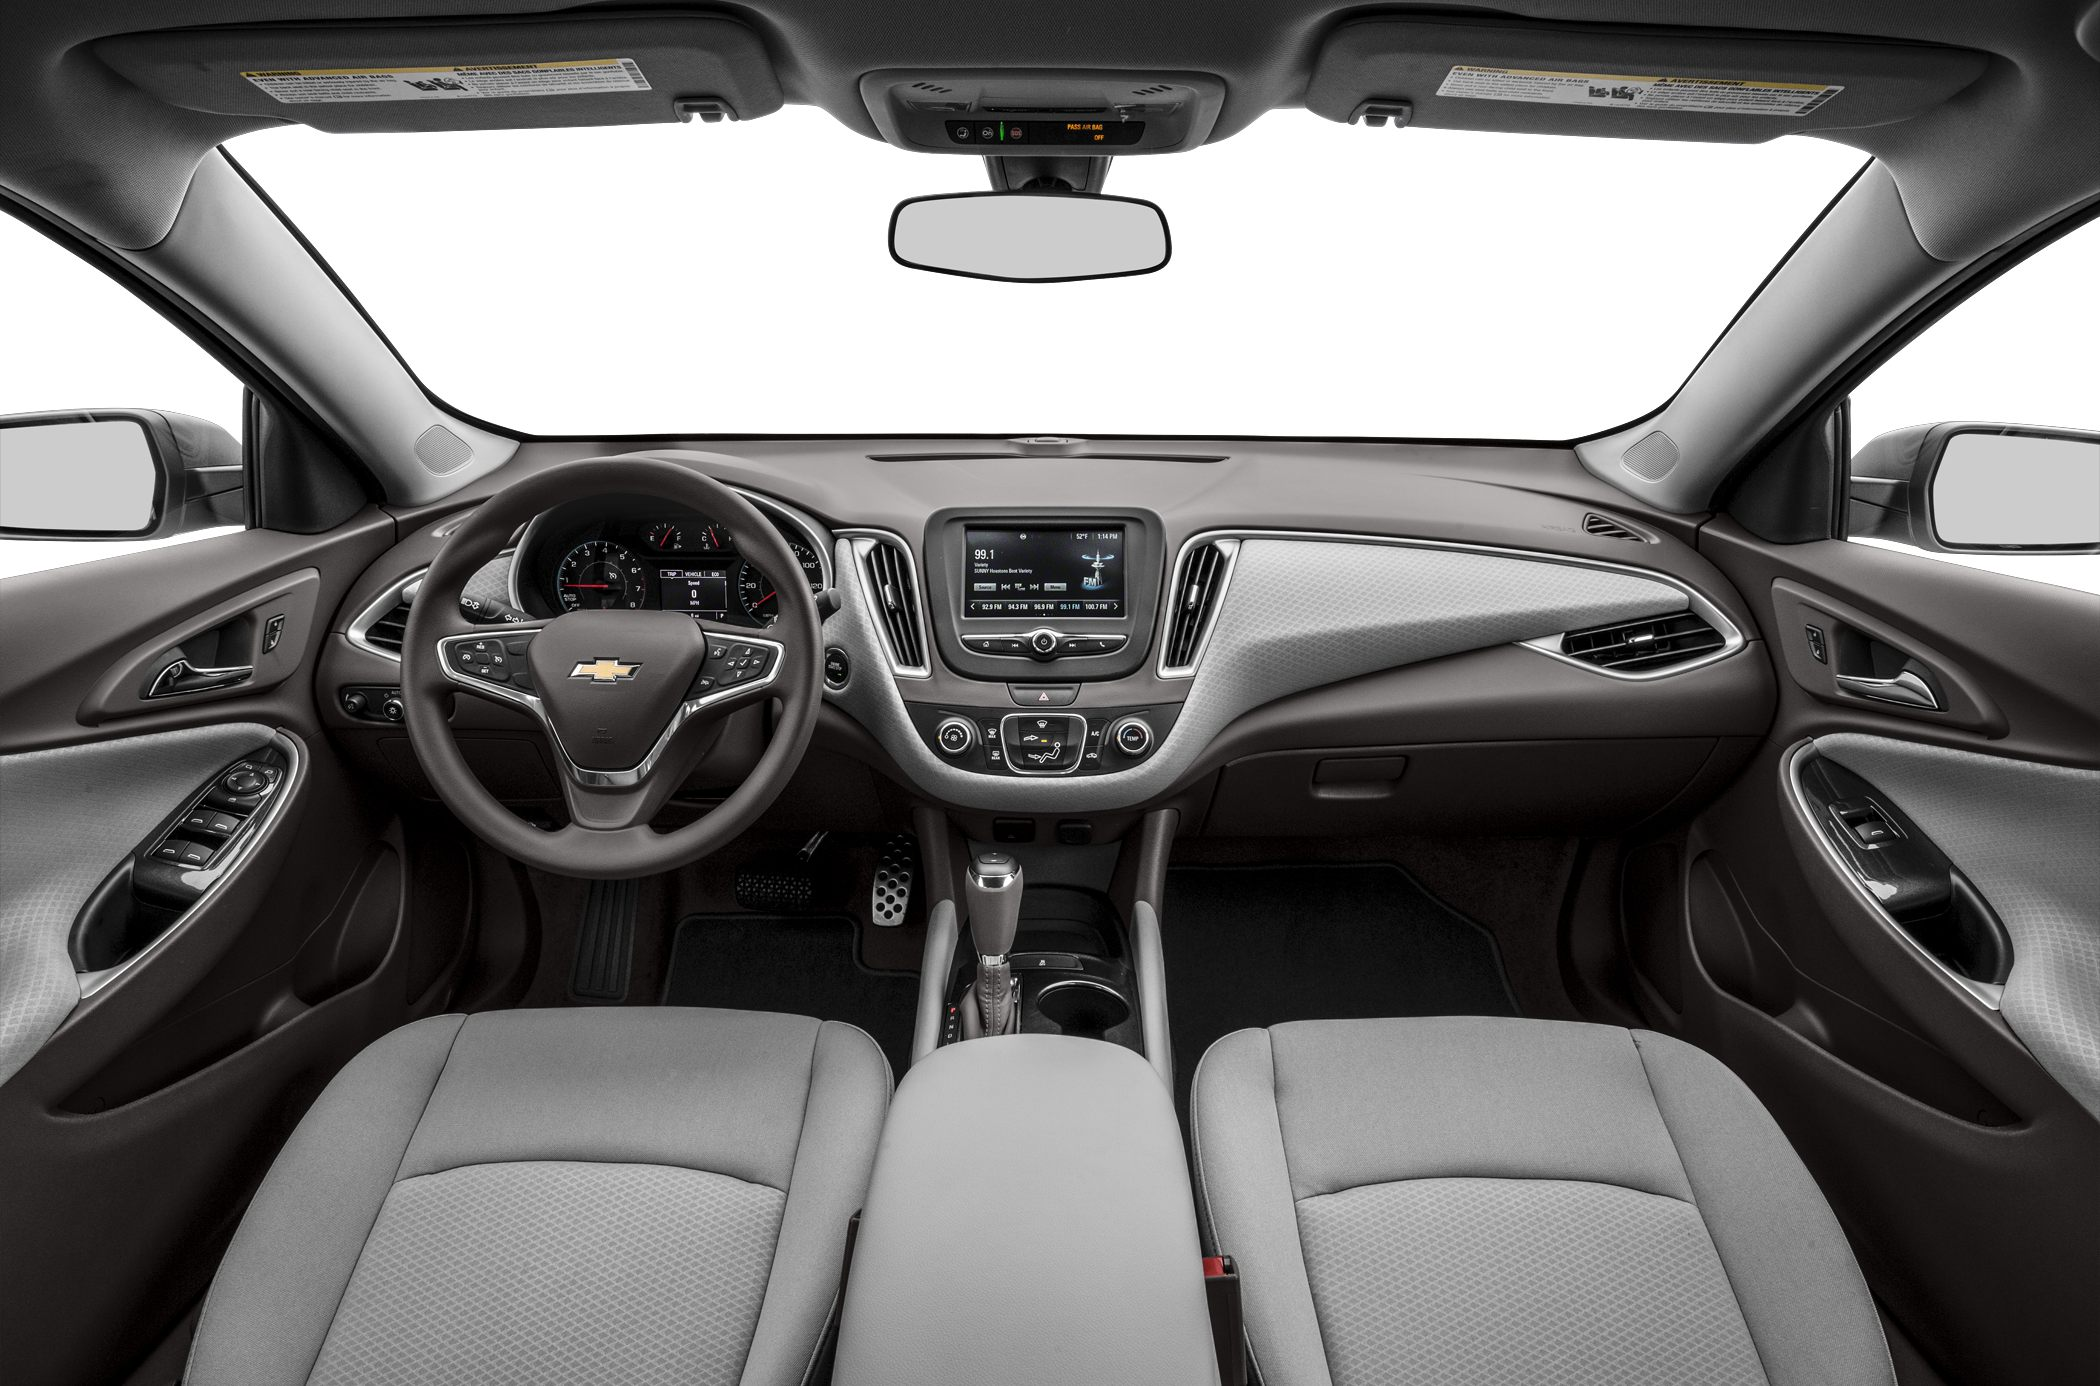 2018 Chevrolet Malibu Pictures & Photos - CarsDirect